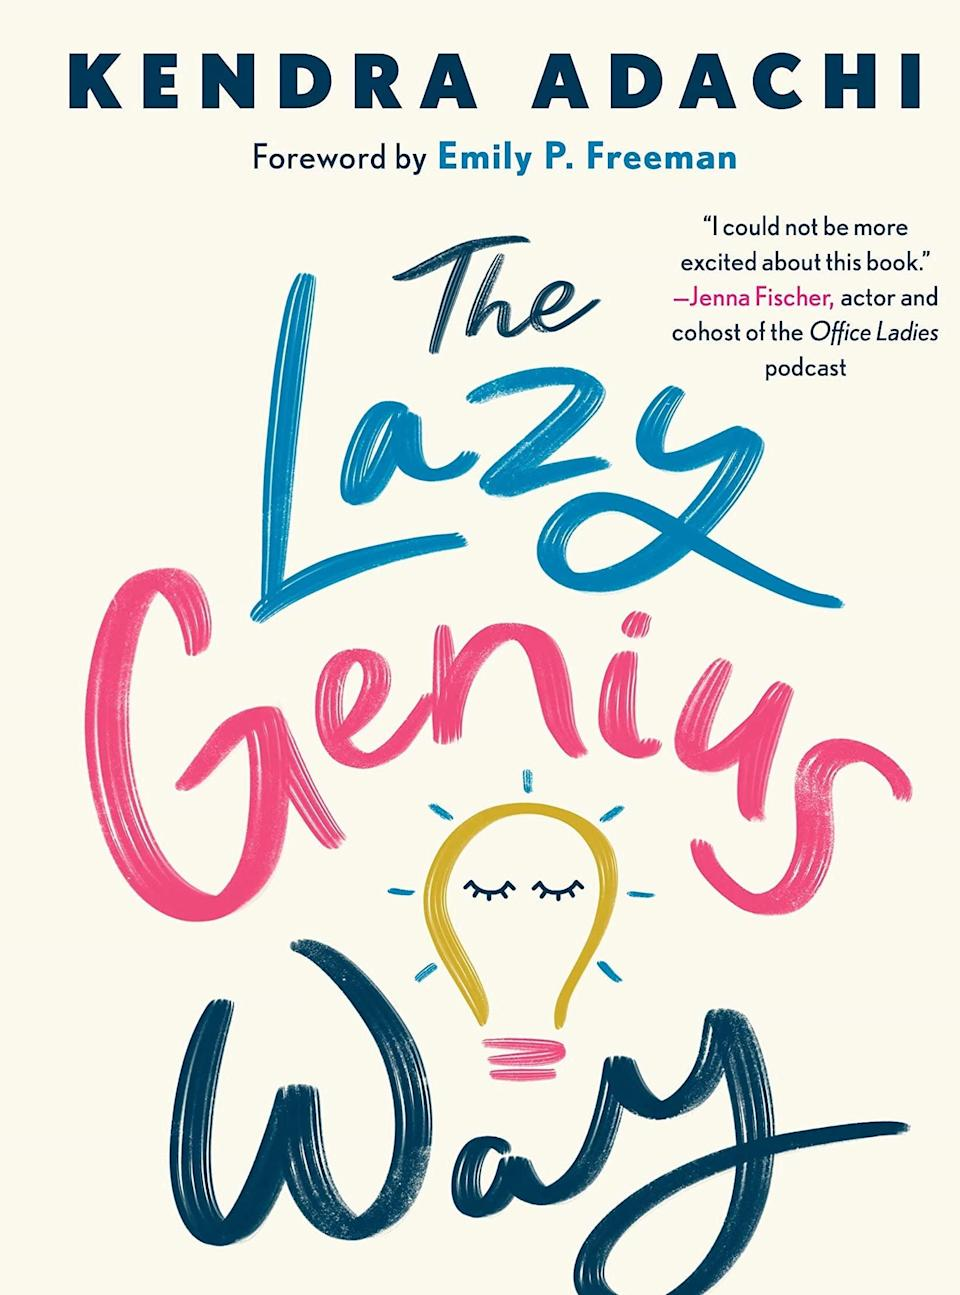 <p>Kendra Adachi, the creator of The Lazy Genius podcast, has written a book that breathes life into the normalcy and significance of doing what matters to you, as opposed to giving into the social expectations of what it means to live well. In her book, <b><span>The Lazy Genius Way</span></b> invites readers to define their own significance towards what matters to them and lazy about what doesn't. Prioritizing principles that elevate your state of being while discovering new ways to approach relationships within your life is the echo of hope within Adachi's book.<br><br></p>